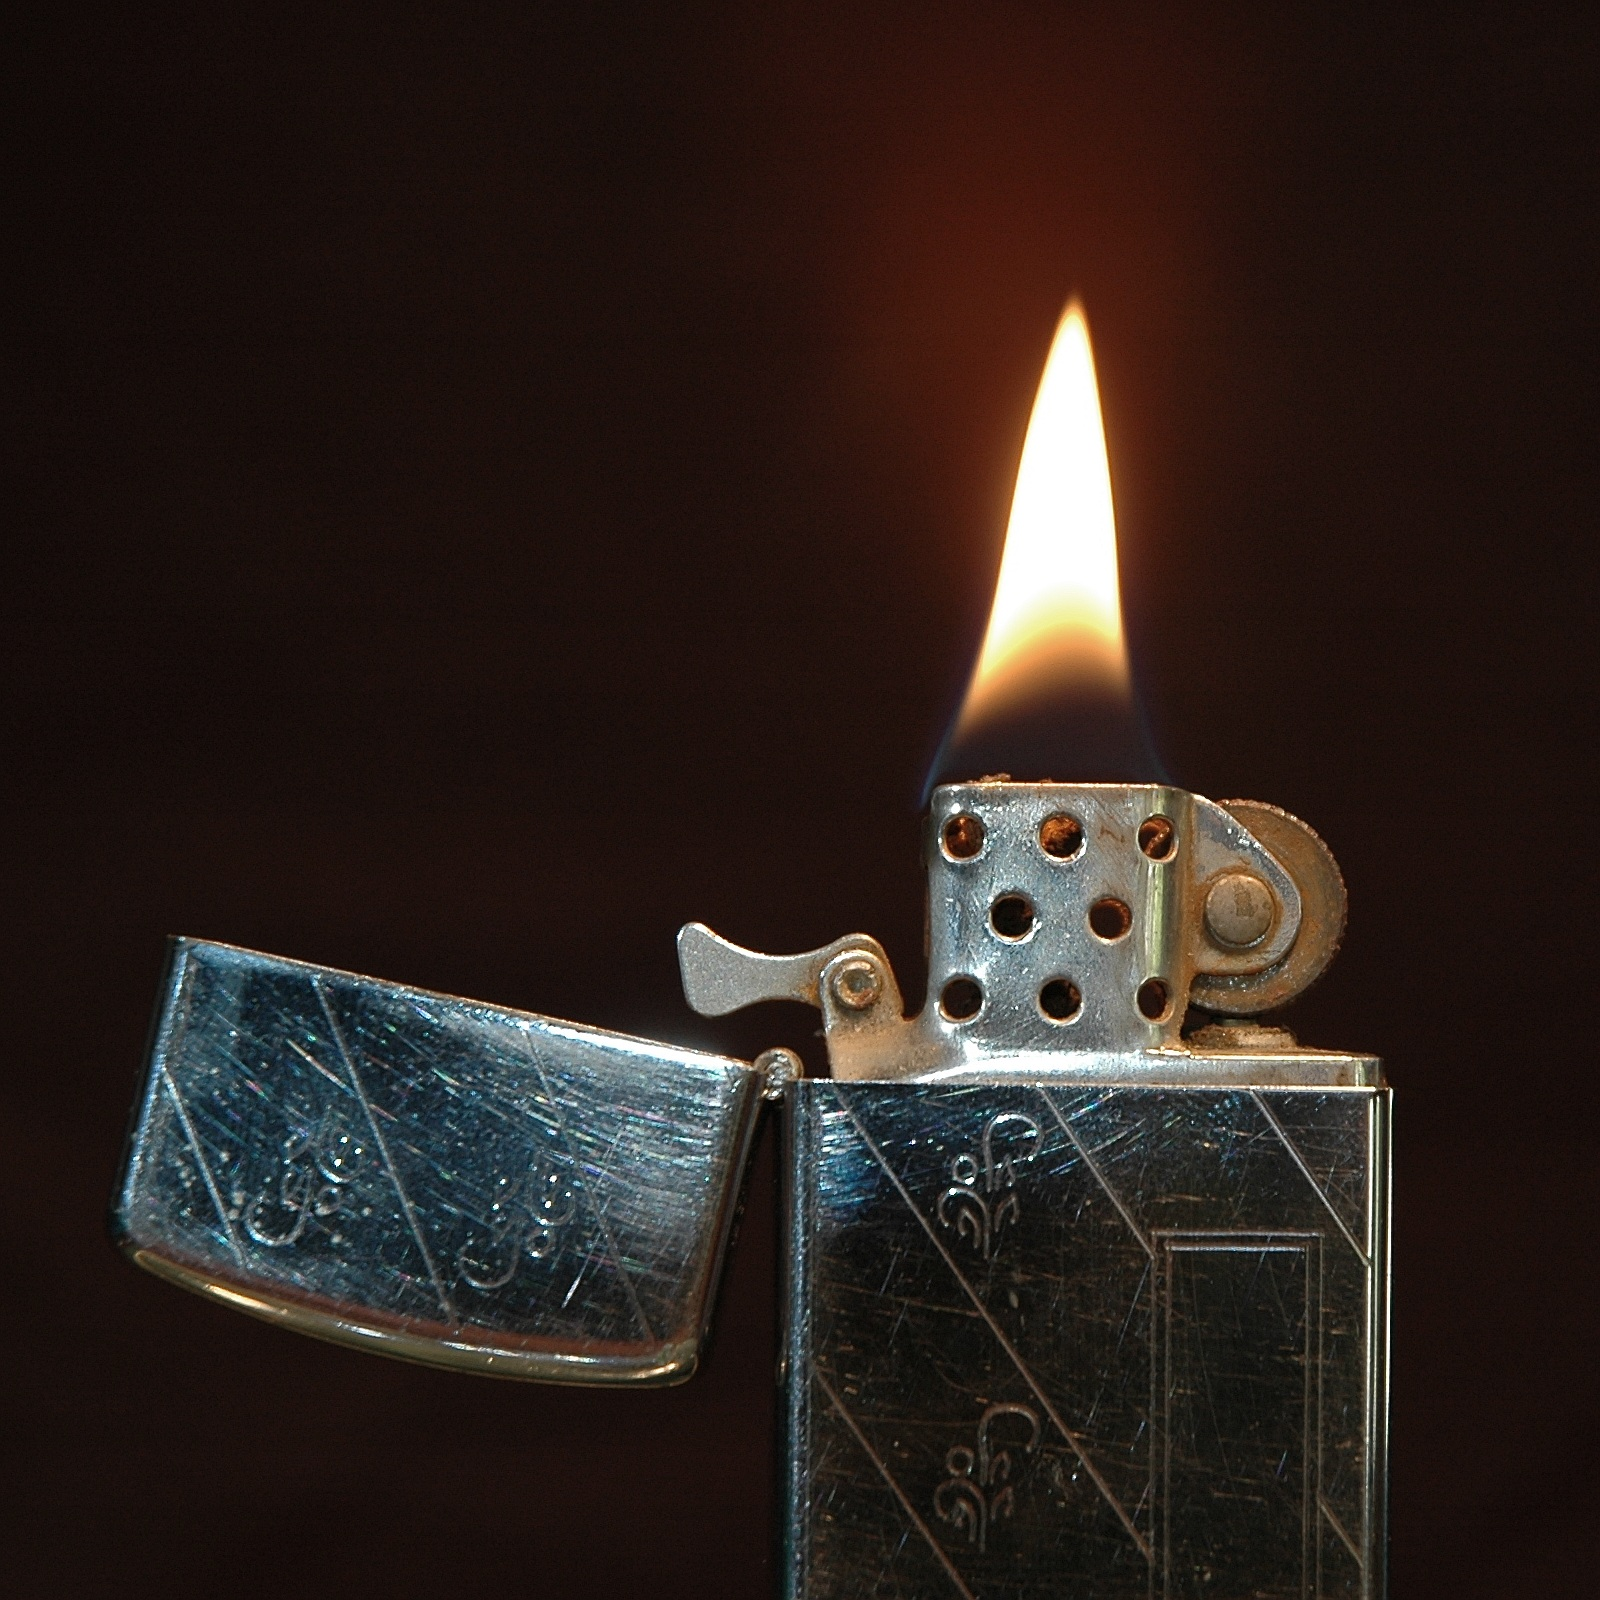 File:Zippo-Slim-1968-Lit.jpg - Wikipedia, the free encyclopedia